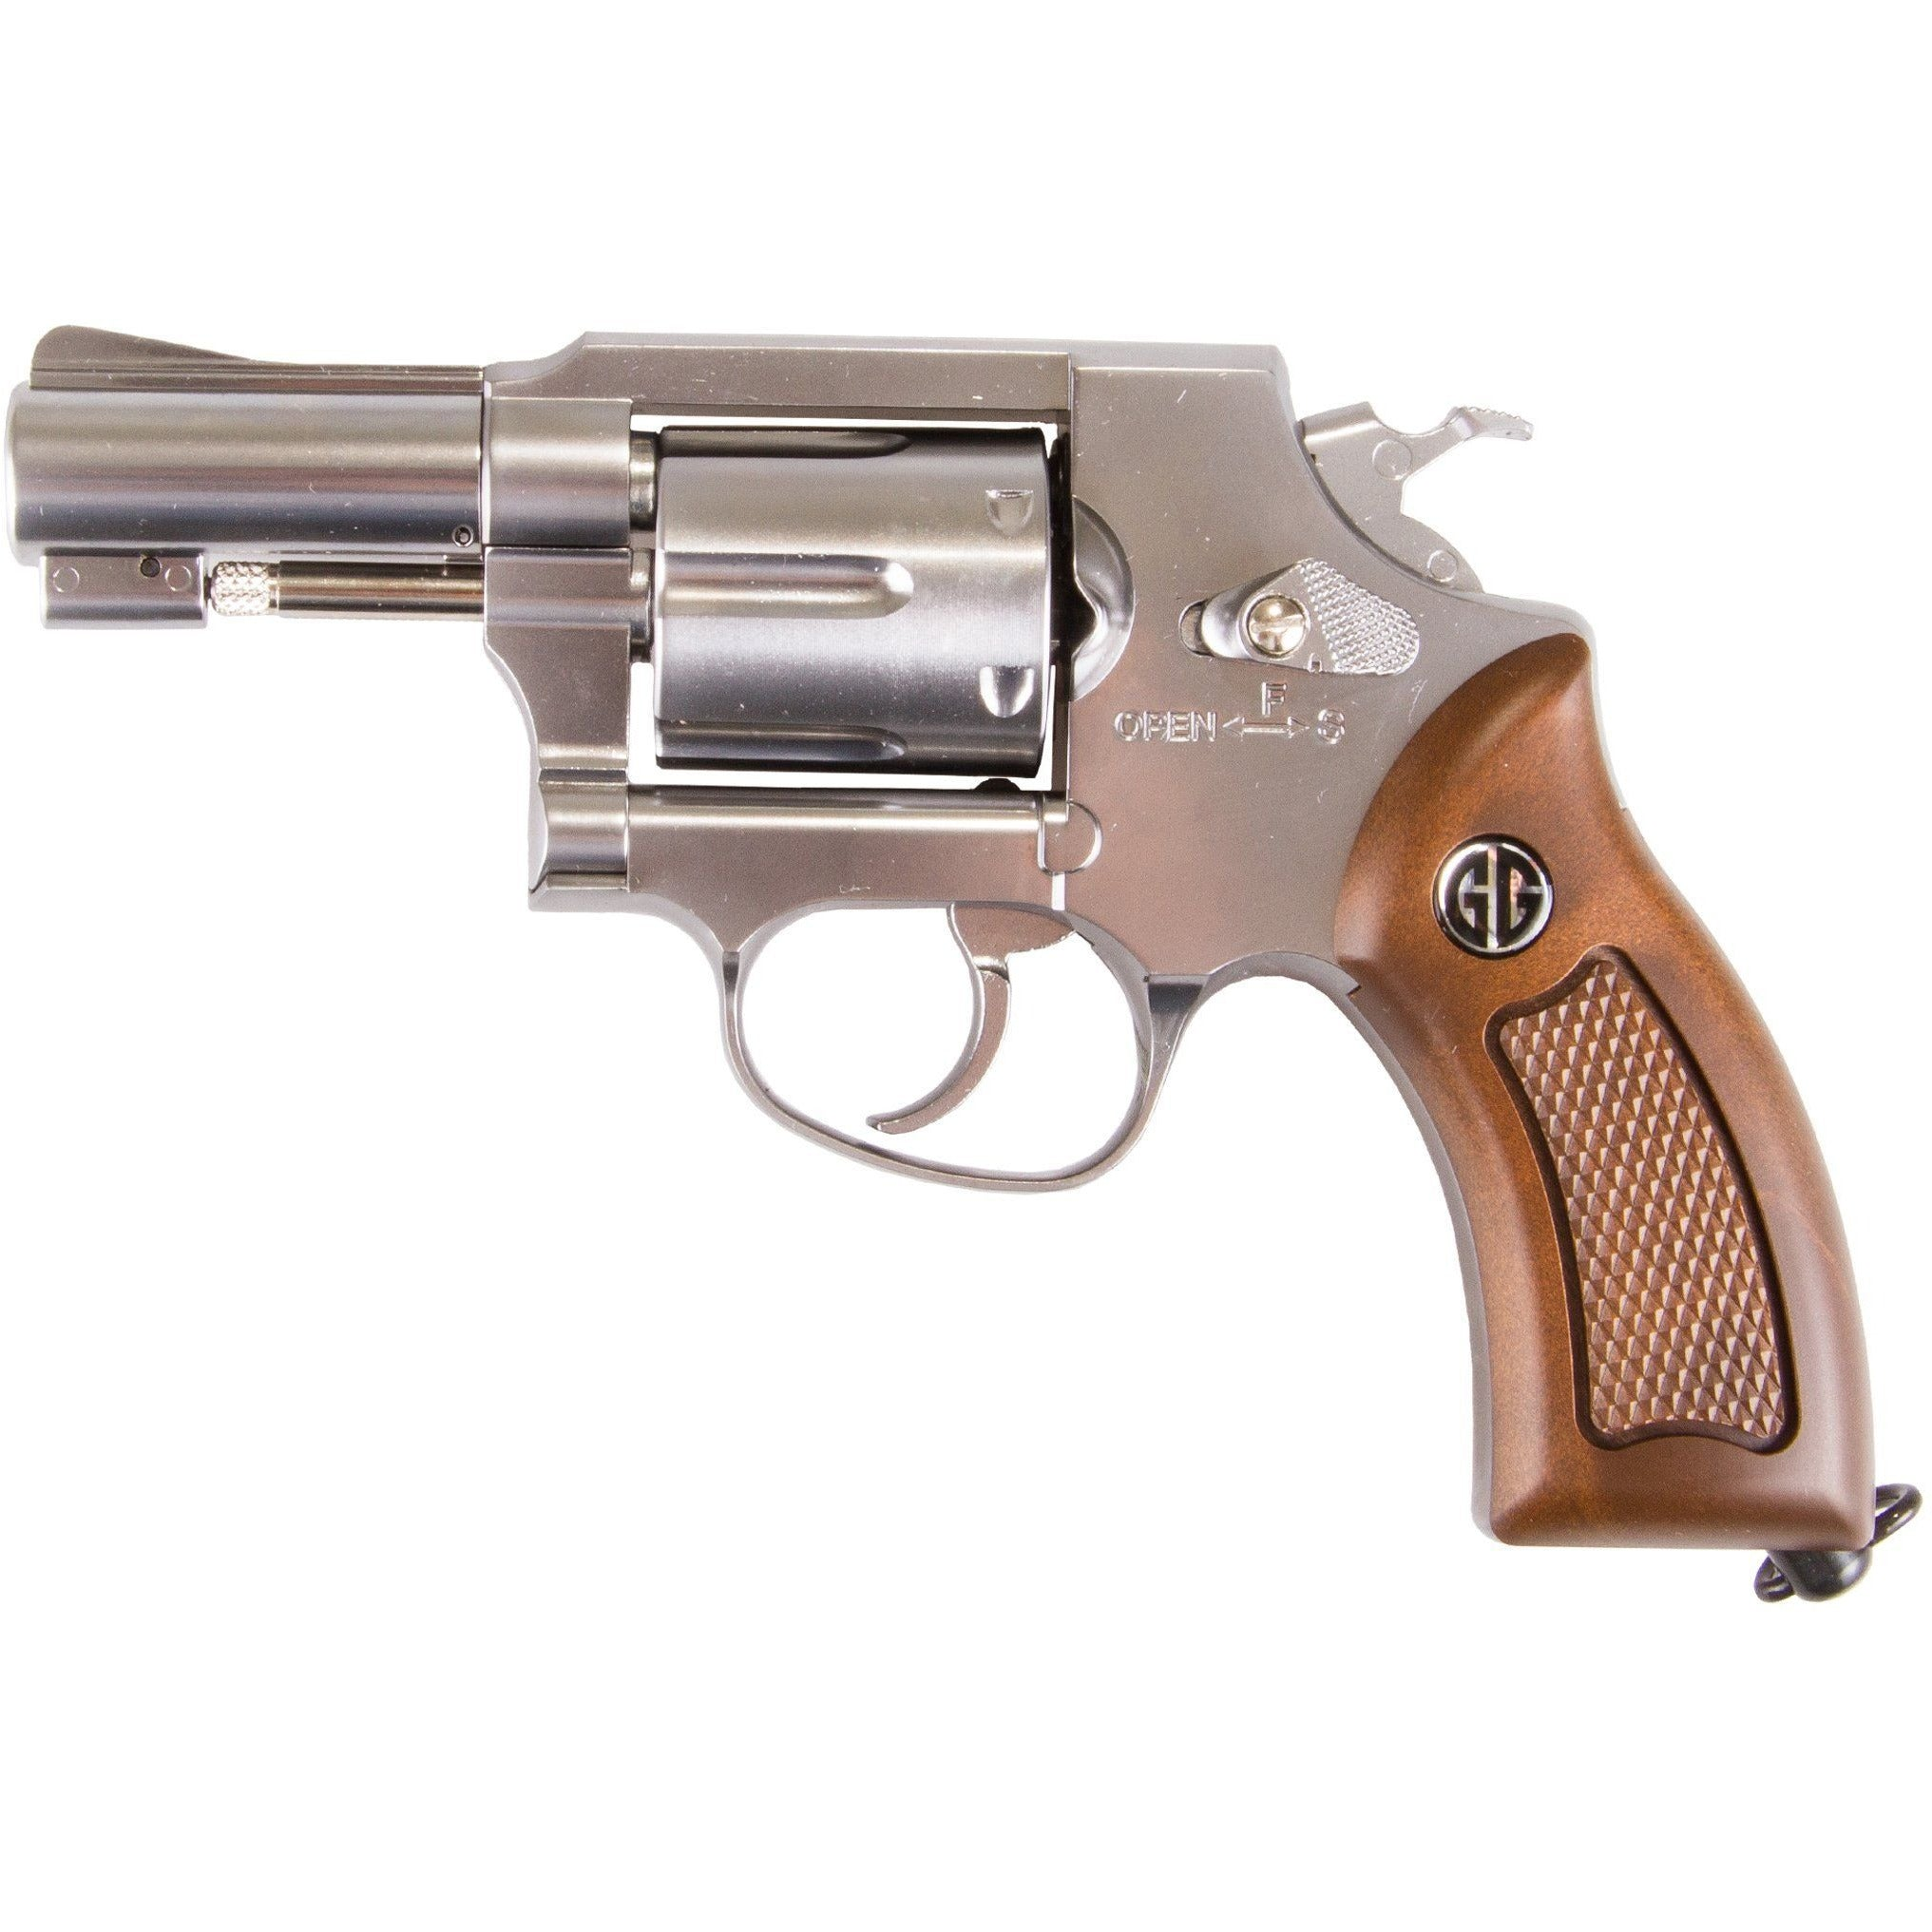 G&G G731 Co2 airsoft Revolver